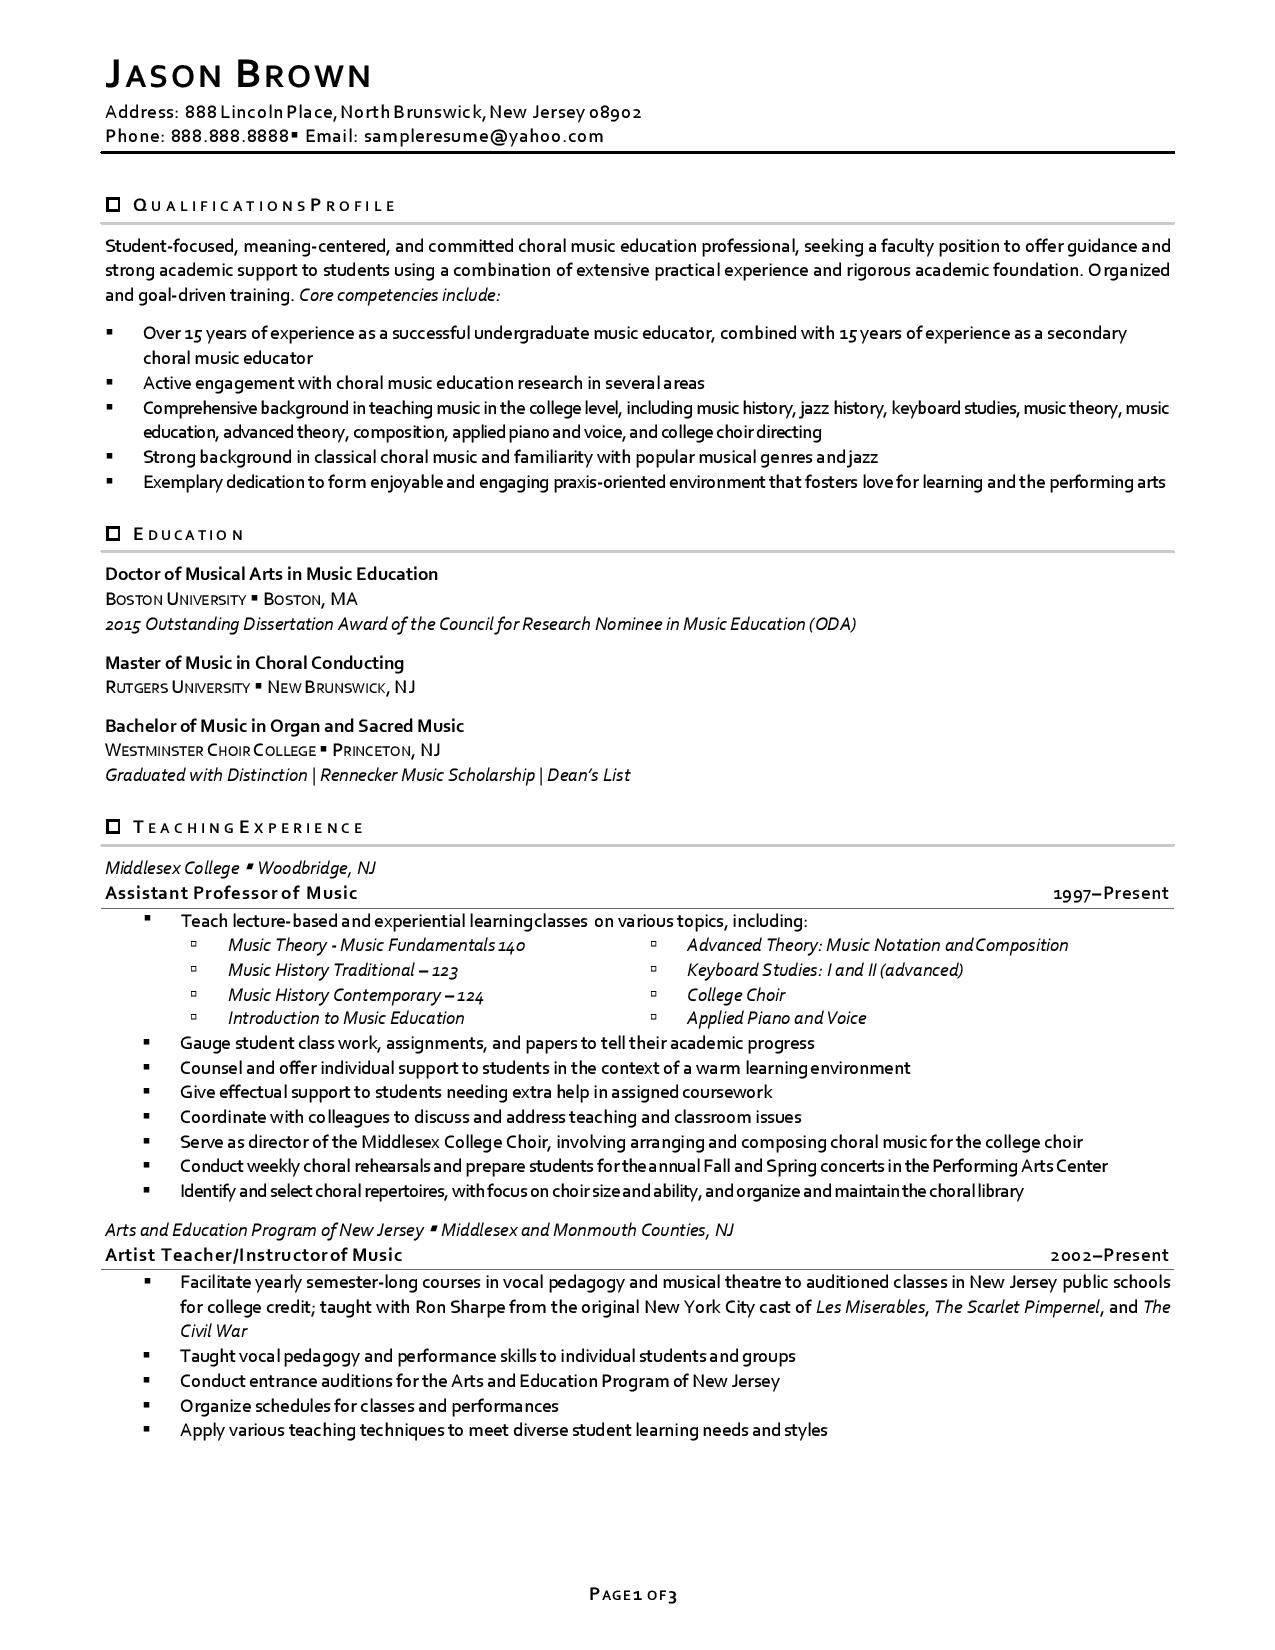 one of faculty resume examples showing professional experience with light accents page 1